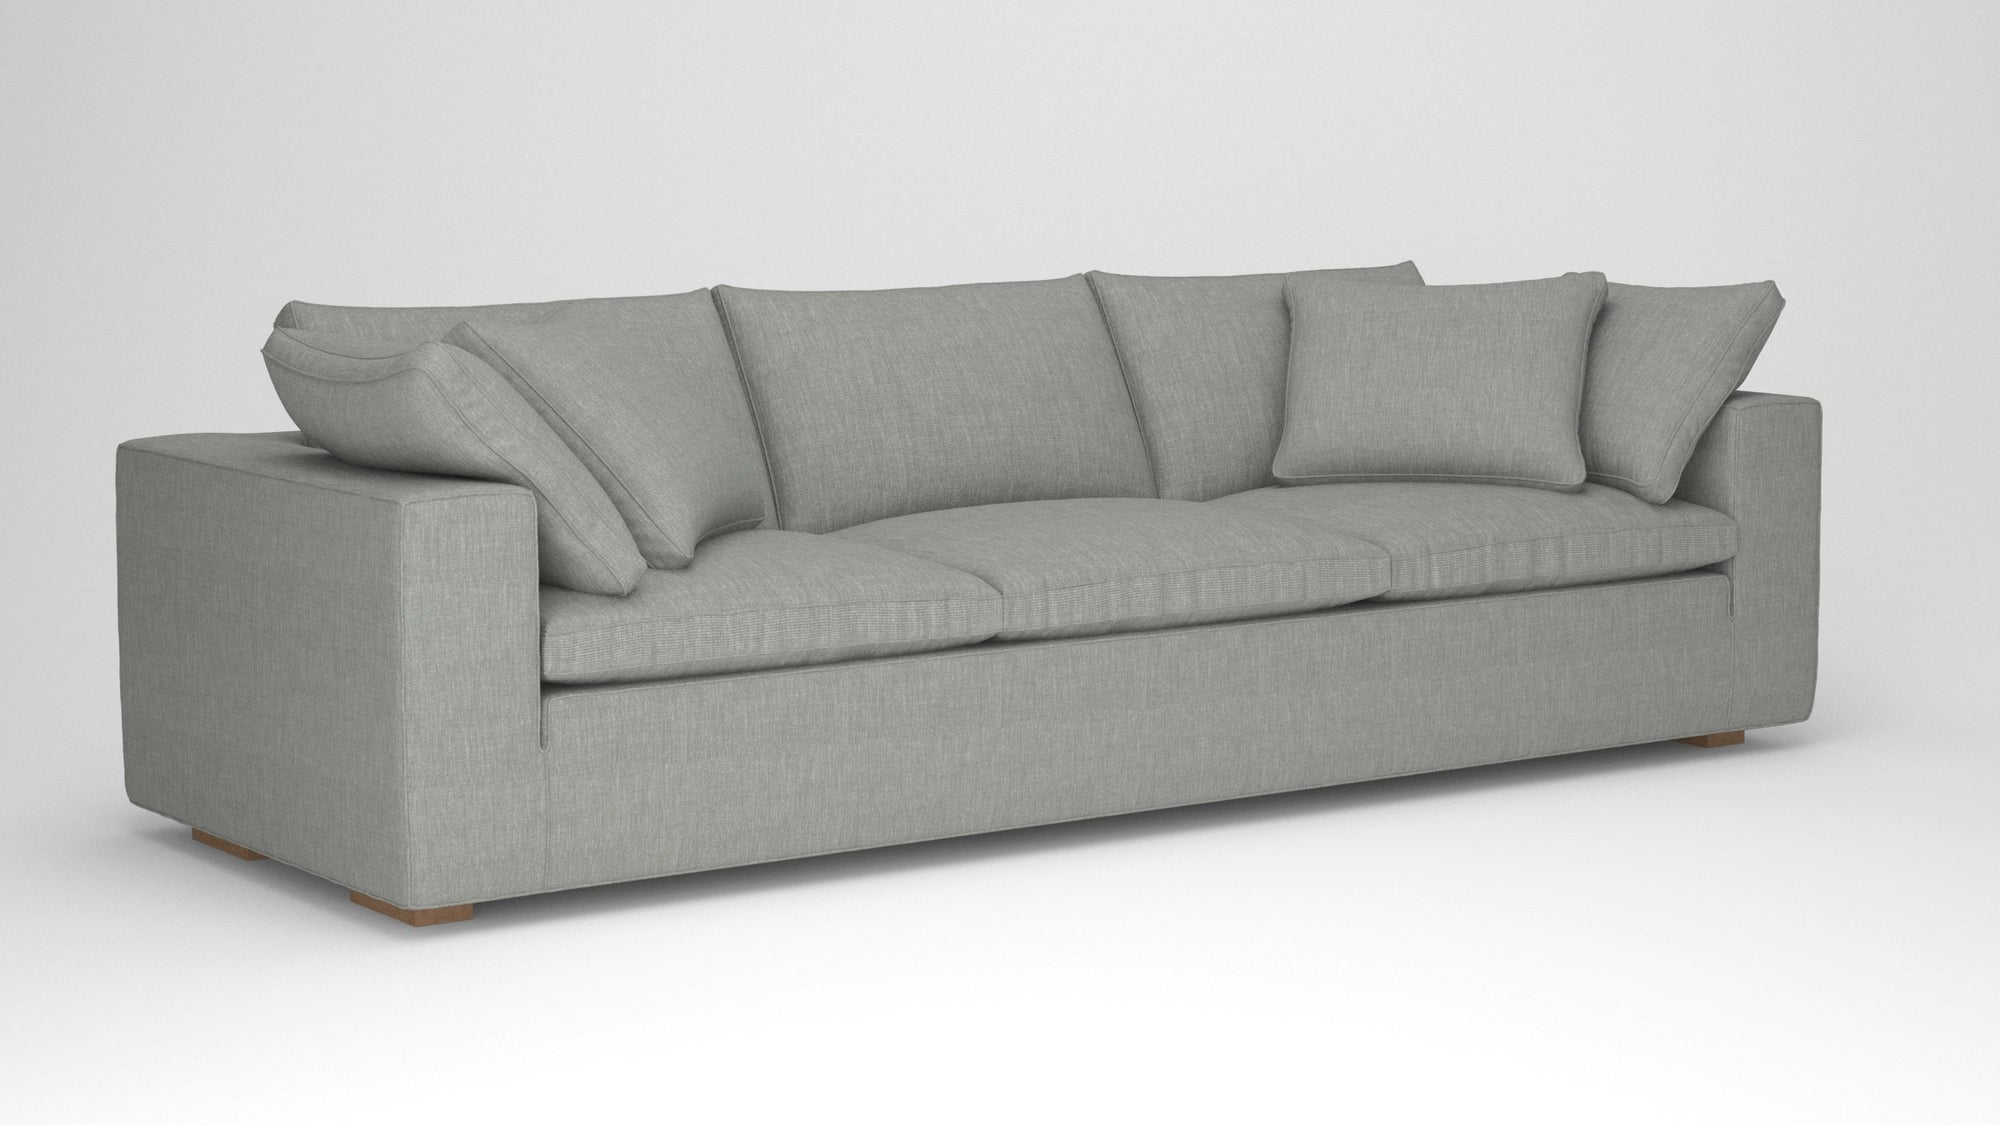 Franklin 3-Seater Sofa